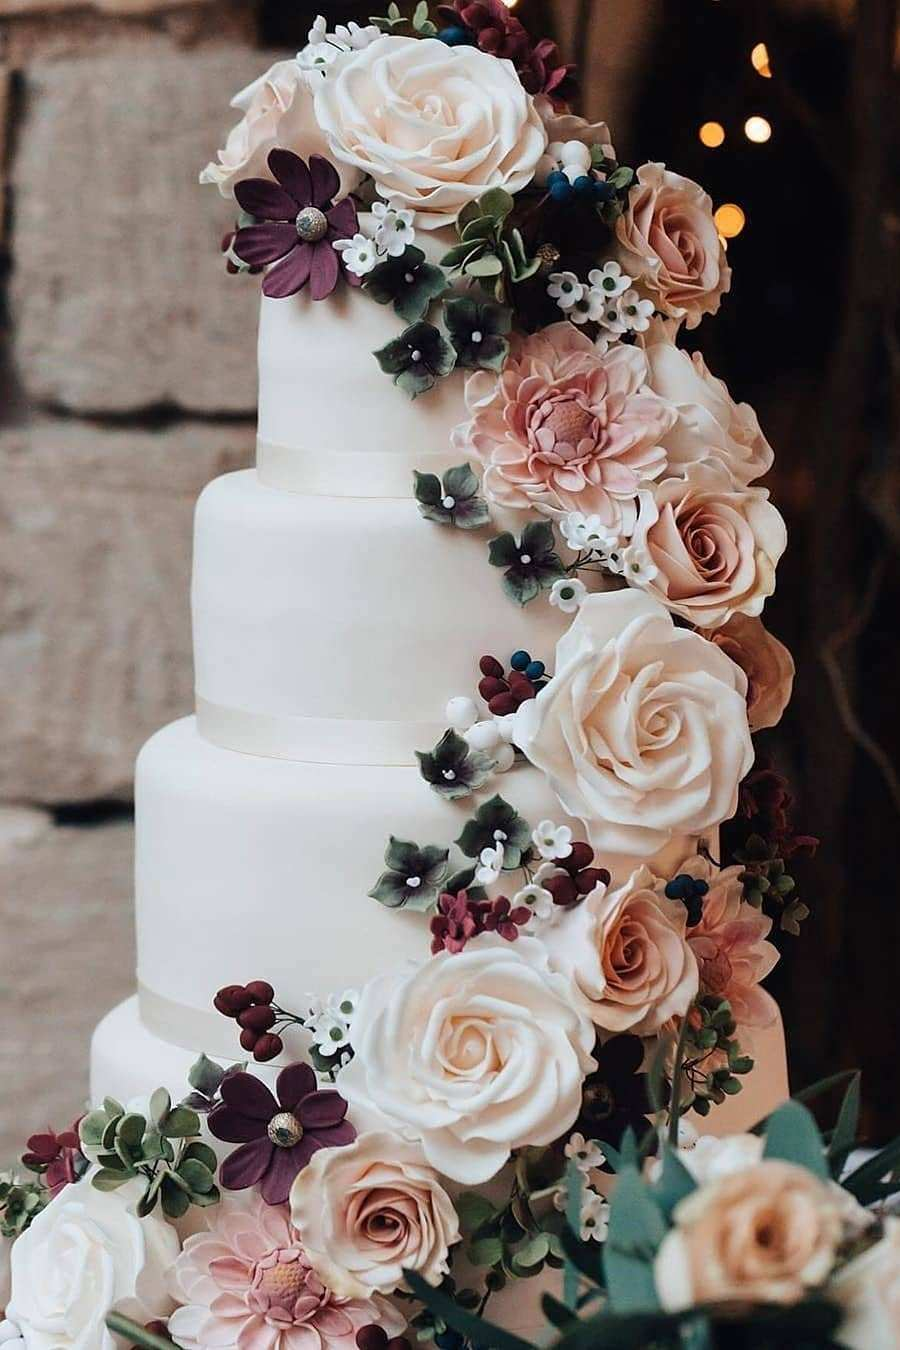 chic rustic blush and burgundy flower wedding cake ideas for fall